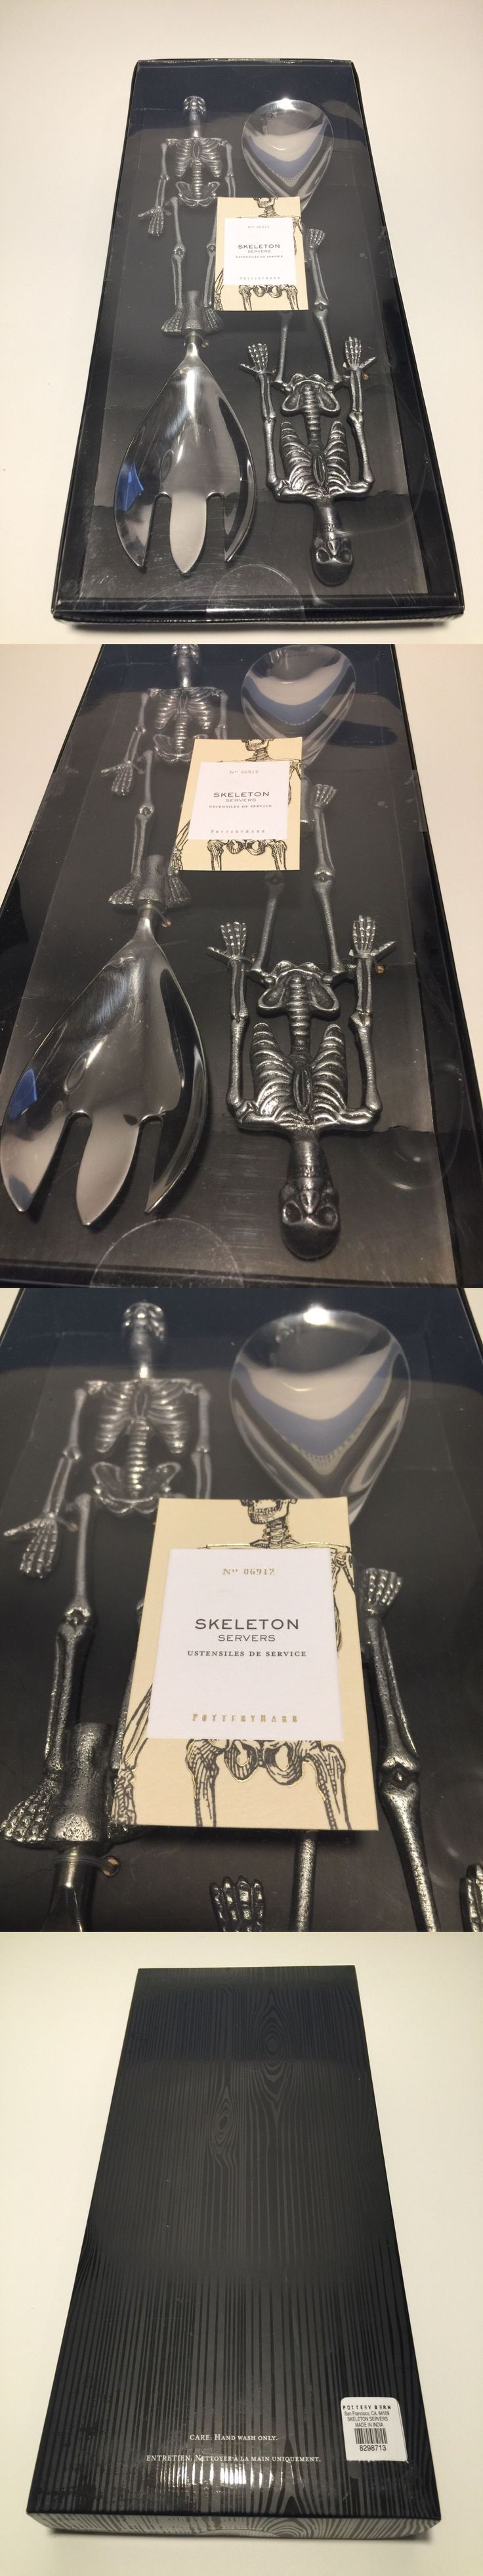 Serving Utensils and Sets 137750: Pottery Barn Halloween Party Skeleton Server Set Serving Utensils New -> BUY IT NOW ONLY: $49 on eBay!